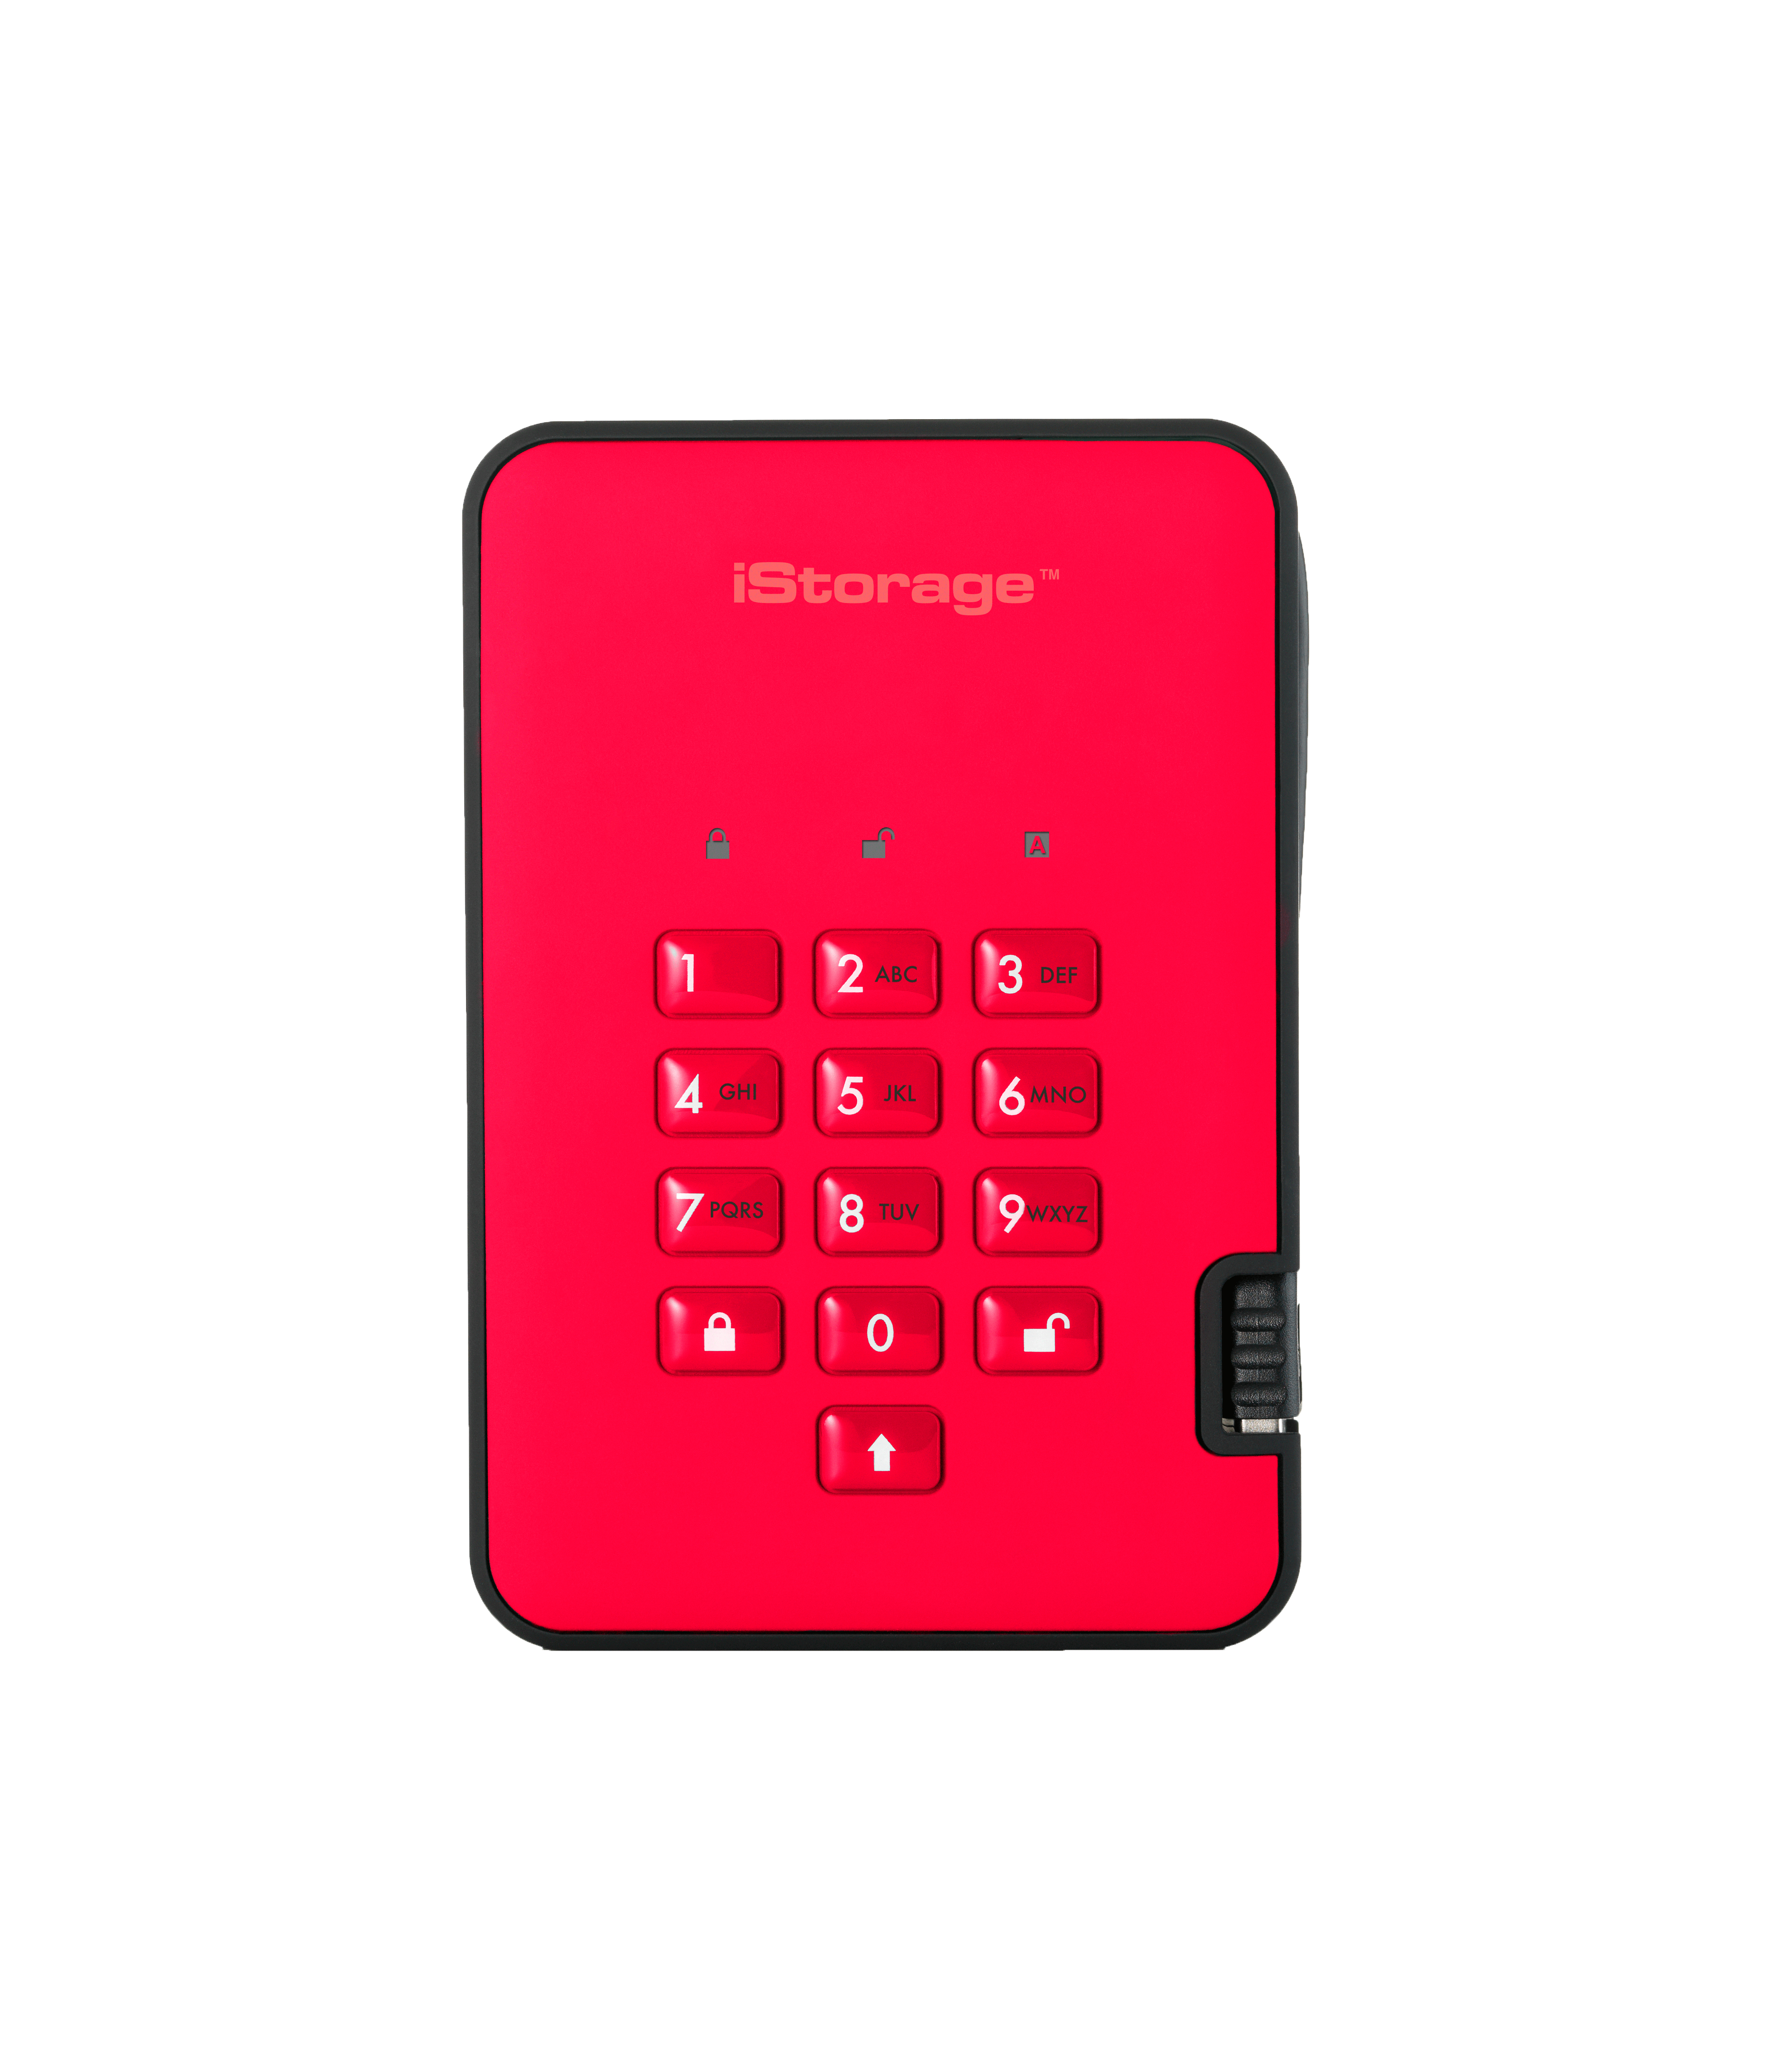 IS-DA2-256-500-R iStorage diskAshur 2 USB Type-A 3.1 (3.1 Gen 2) 500GB Red external hard drive - Ent01